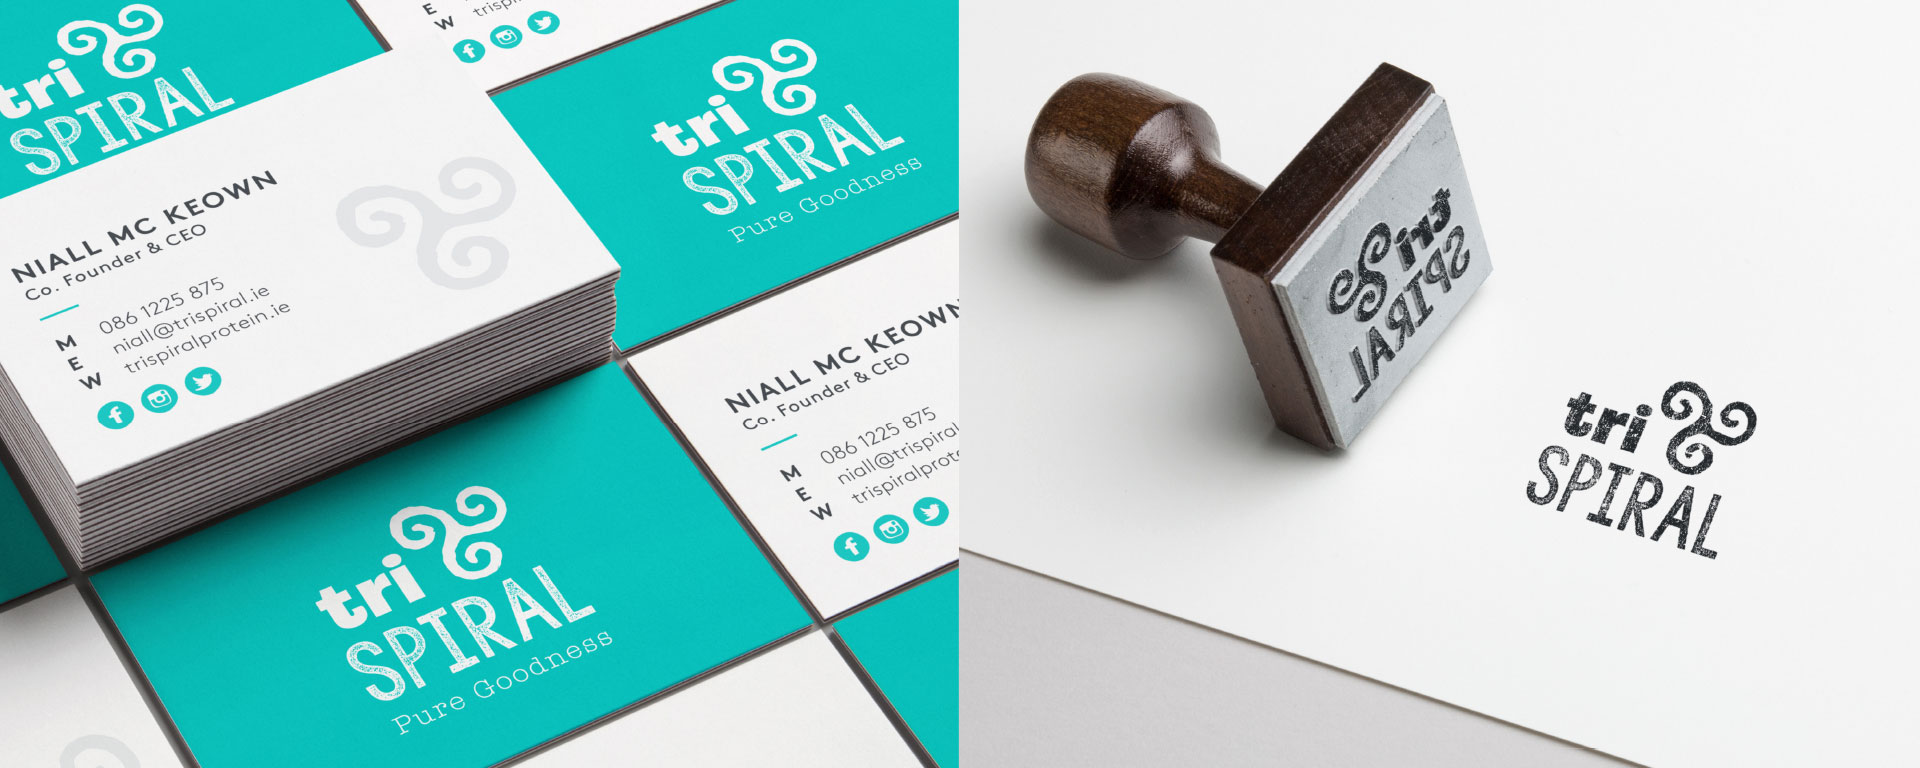 TriSpiral business cards and stamp